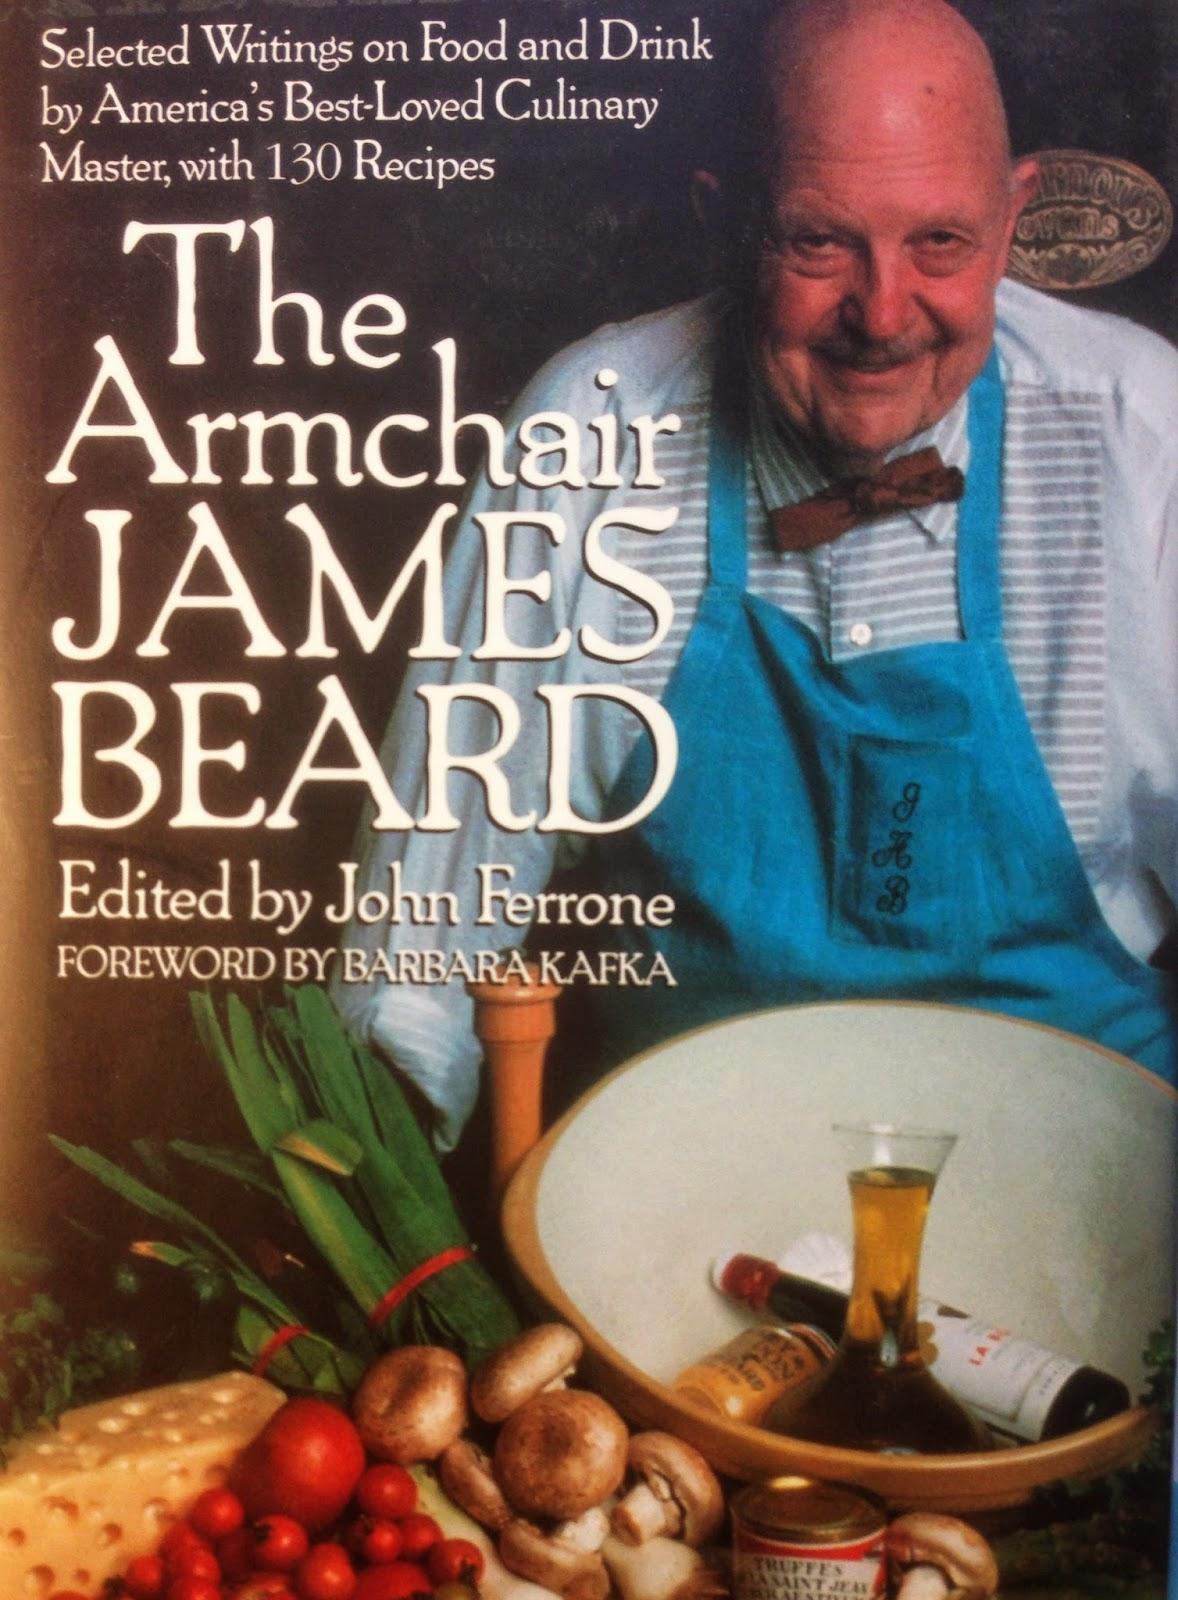 The Armchair James Beard edited by John Ferrone